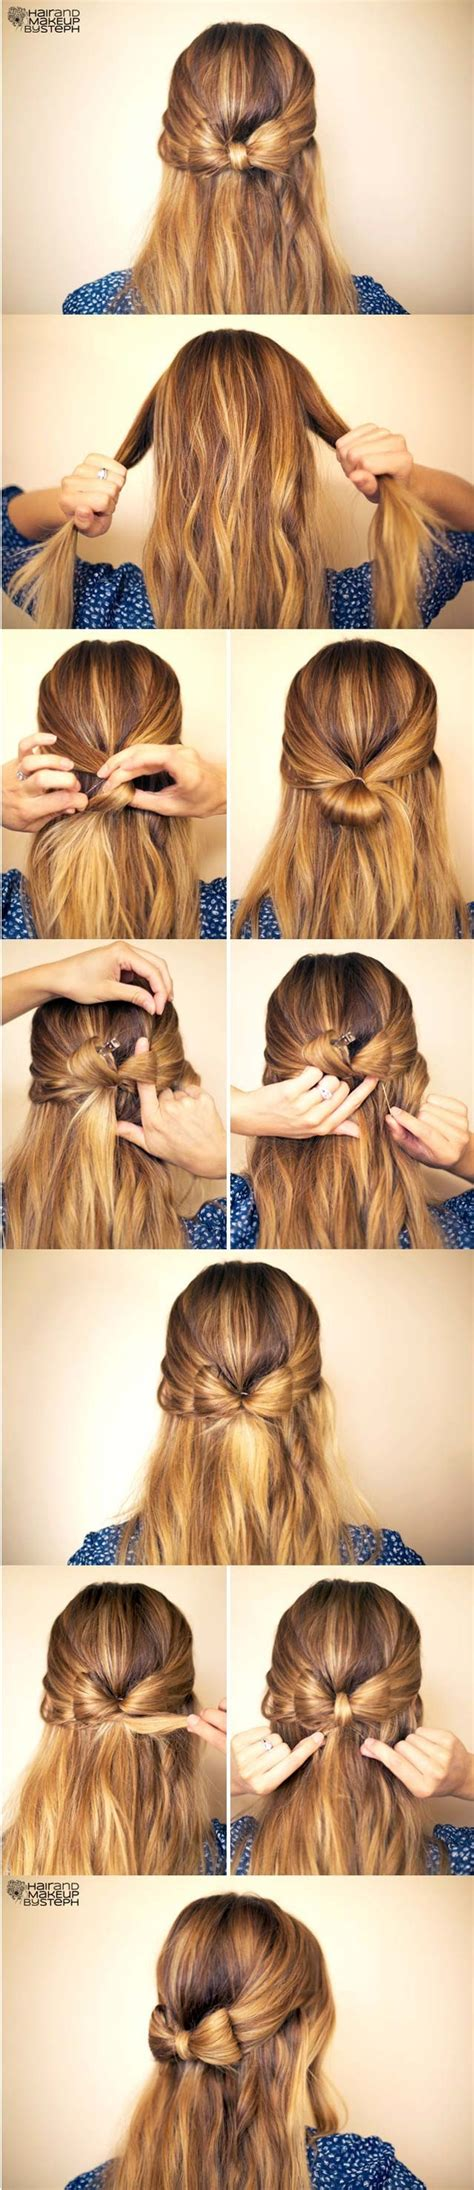 Easy Hairstyles Easy Hairstyles For Hair Step By Step Hairstyles